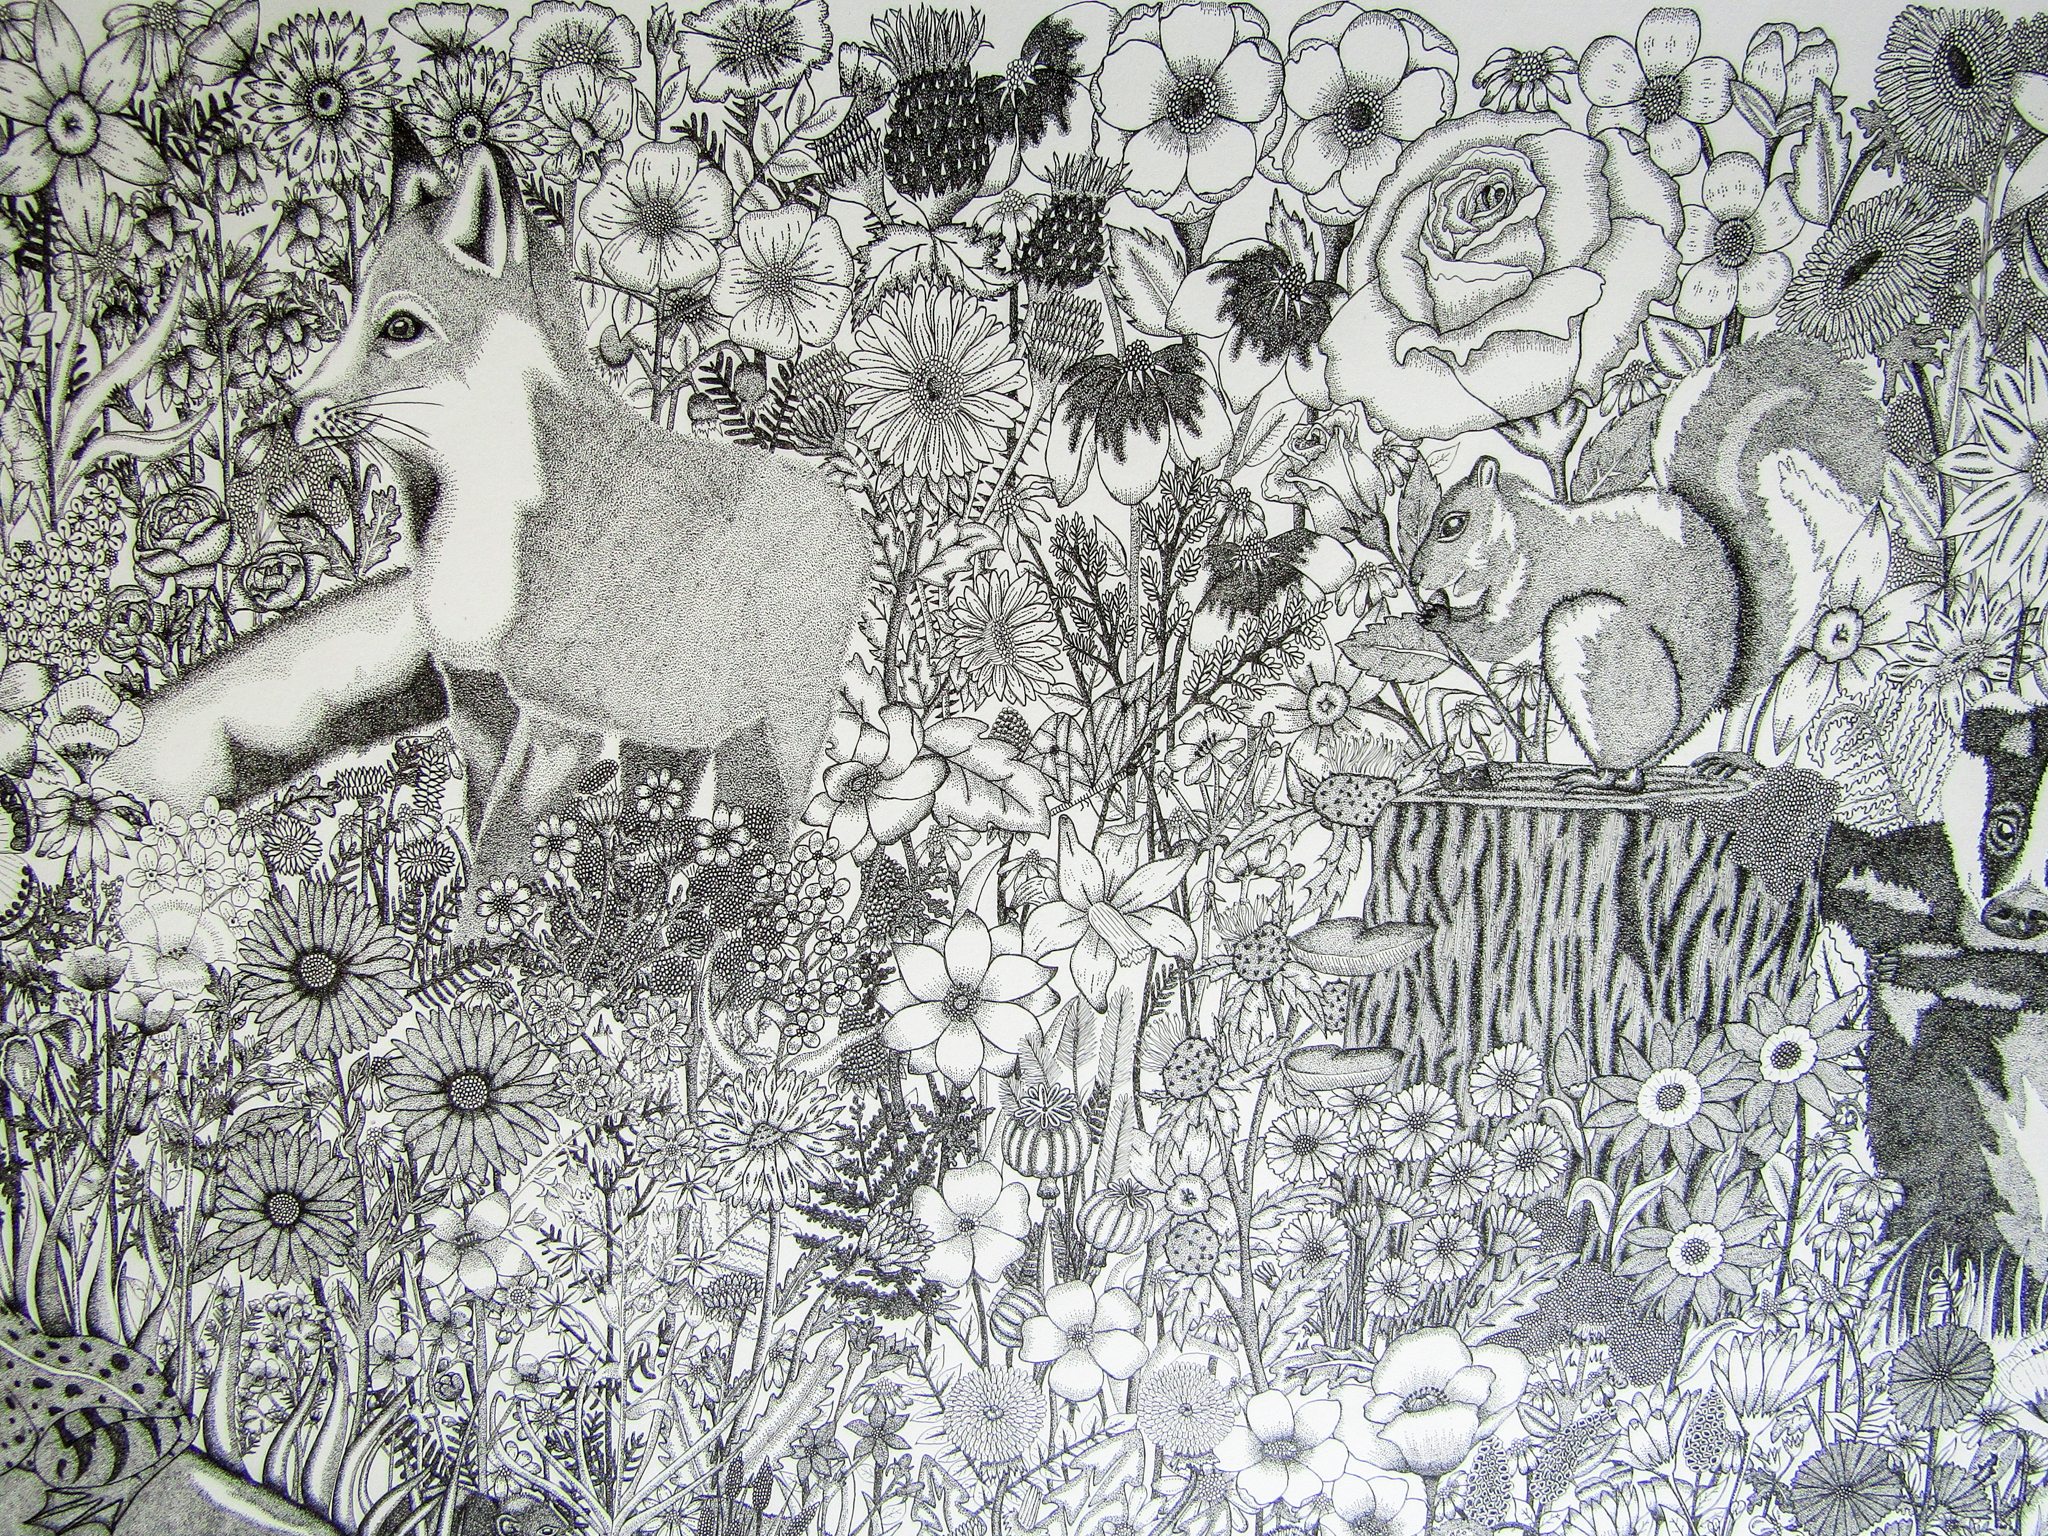 Detail of intricate pen drawing by Corina Fitzgibbon